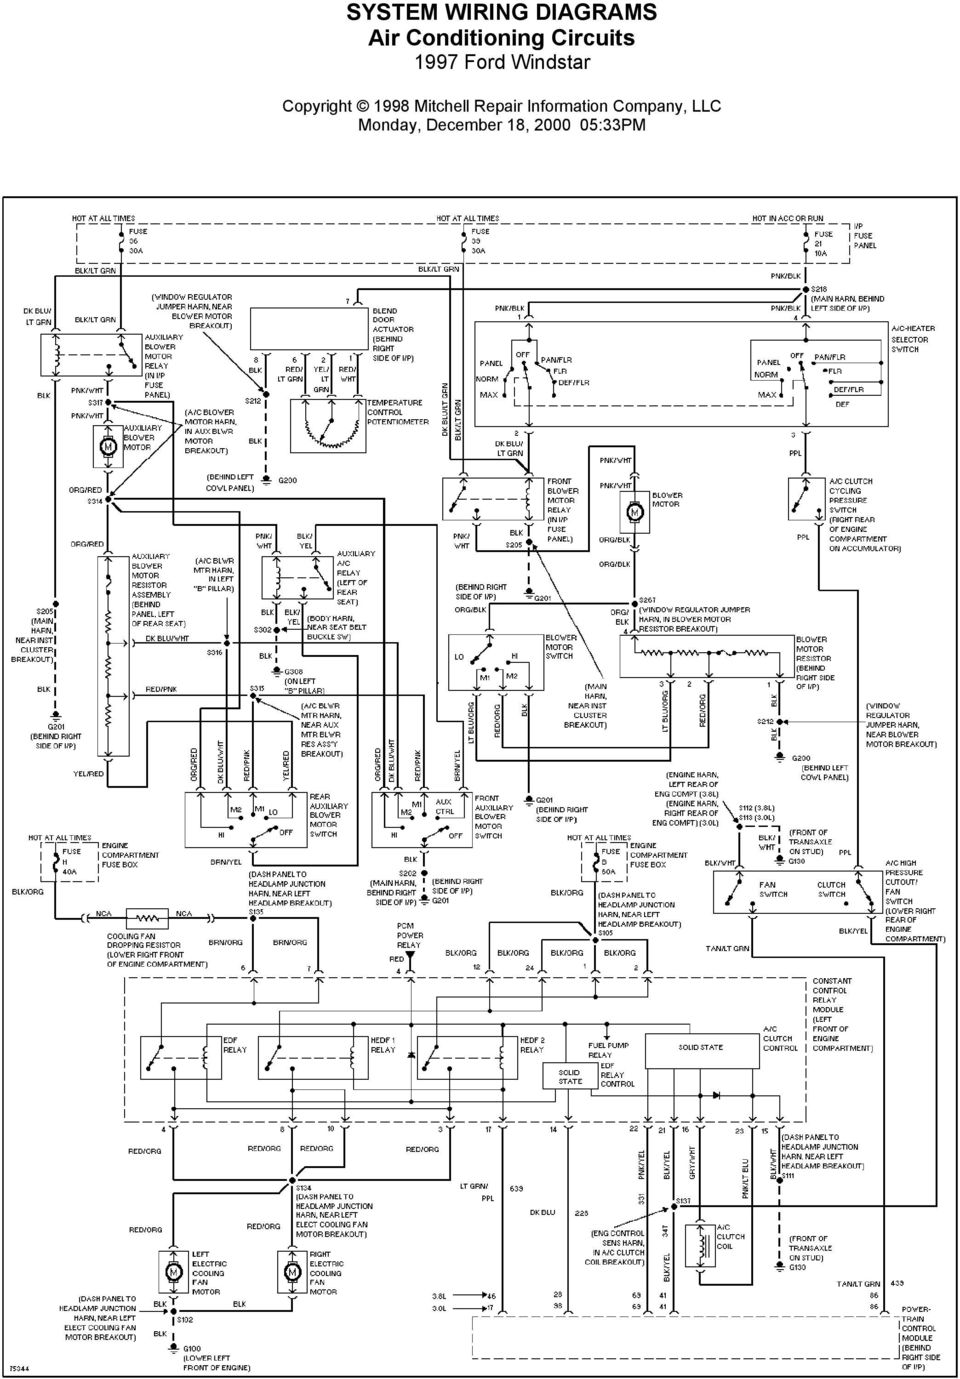 KT_1205] 1997 Ford Windstar System Wiring Diagrams For Front Washer Wiper Wiring  DiagramRious Umng Rect Mohammedshrine Librar Wiring 101